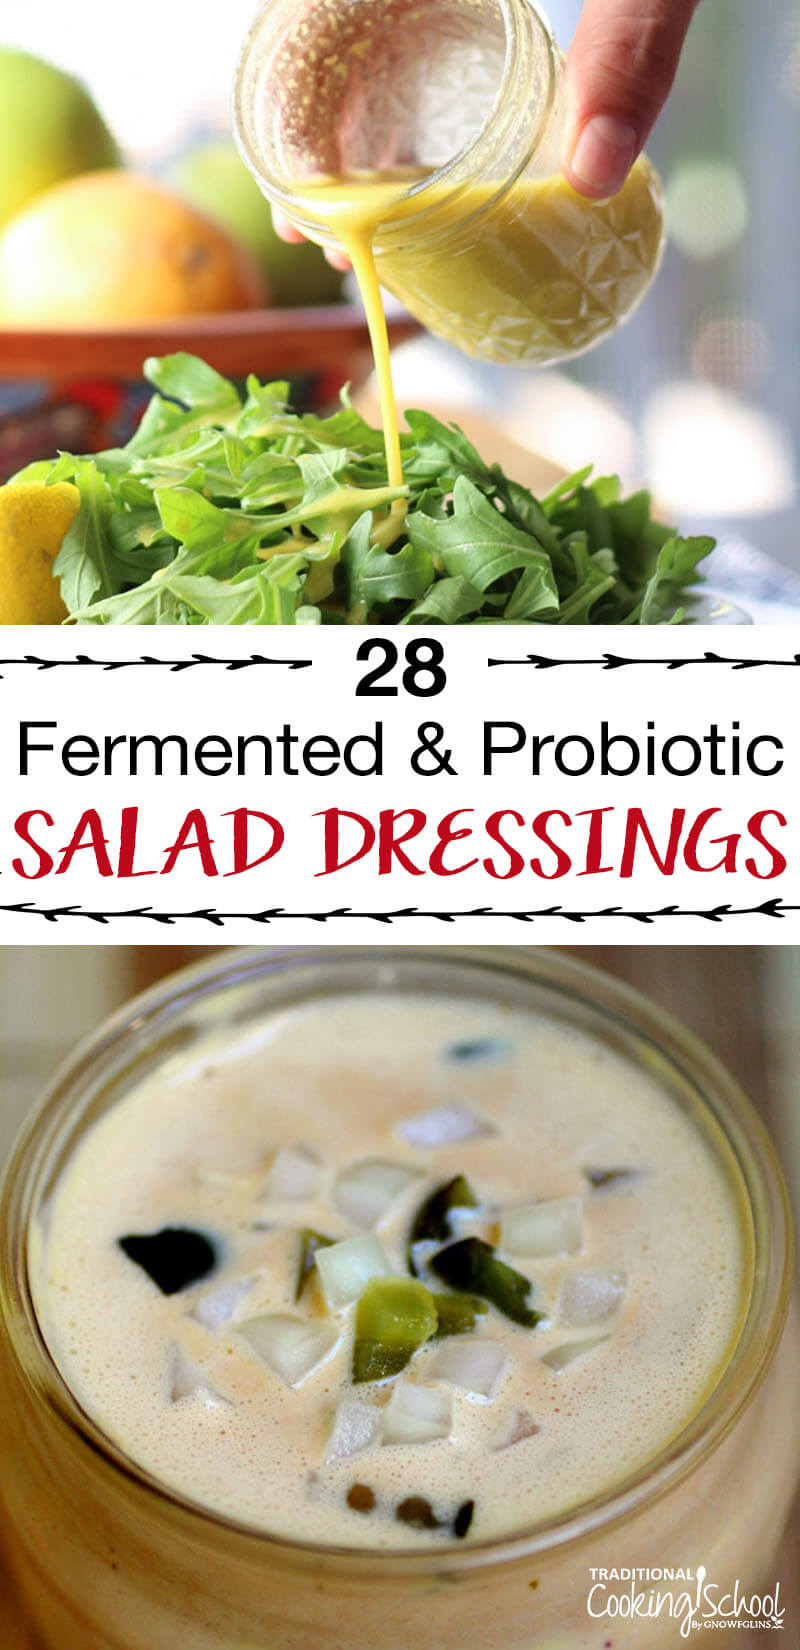 28 Fermented and Probiotic Salad Dressings   Know the feeling? You get attached to a certain bottled or restaurant dressing; then you find out it's full of junk. This round-up of 28 homemade, healthy, fermented and probiotic-filled salad dressing recipes can help! Everything from vinaigrette, italian, balsamic, caesar, asian and greek...we've got all your keto, paleo, low-carb options here for you! #salad #dressing #recipes #homemade #fermented #probiotic #healthy